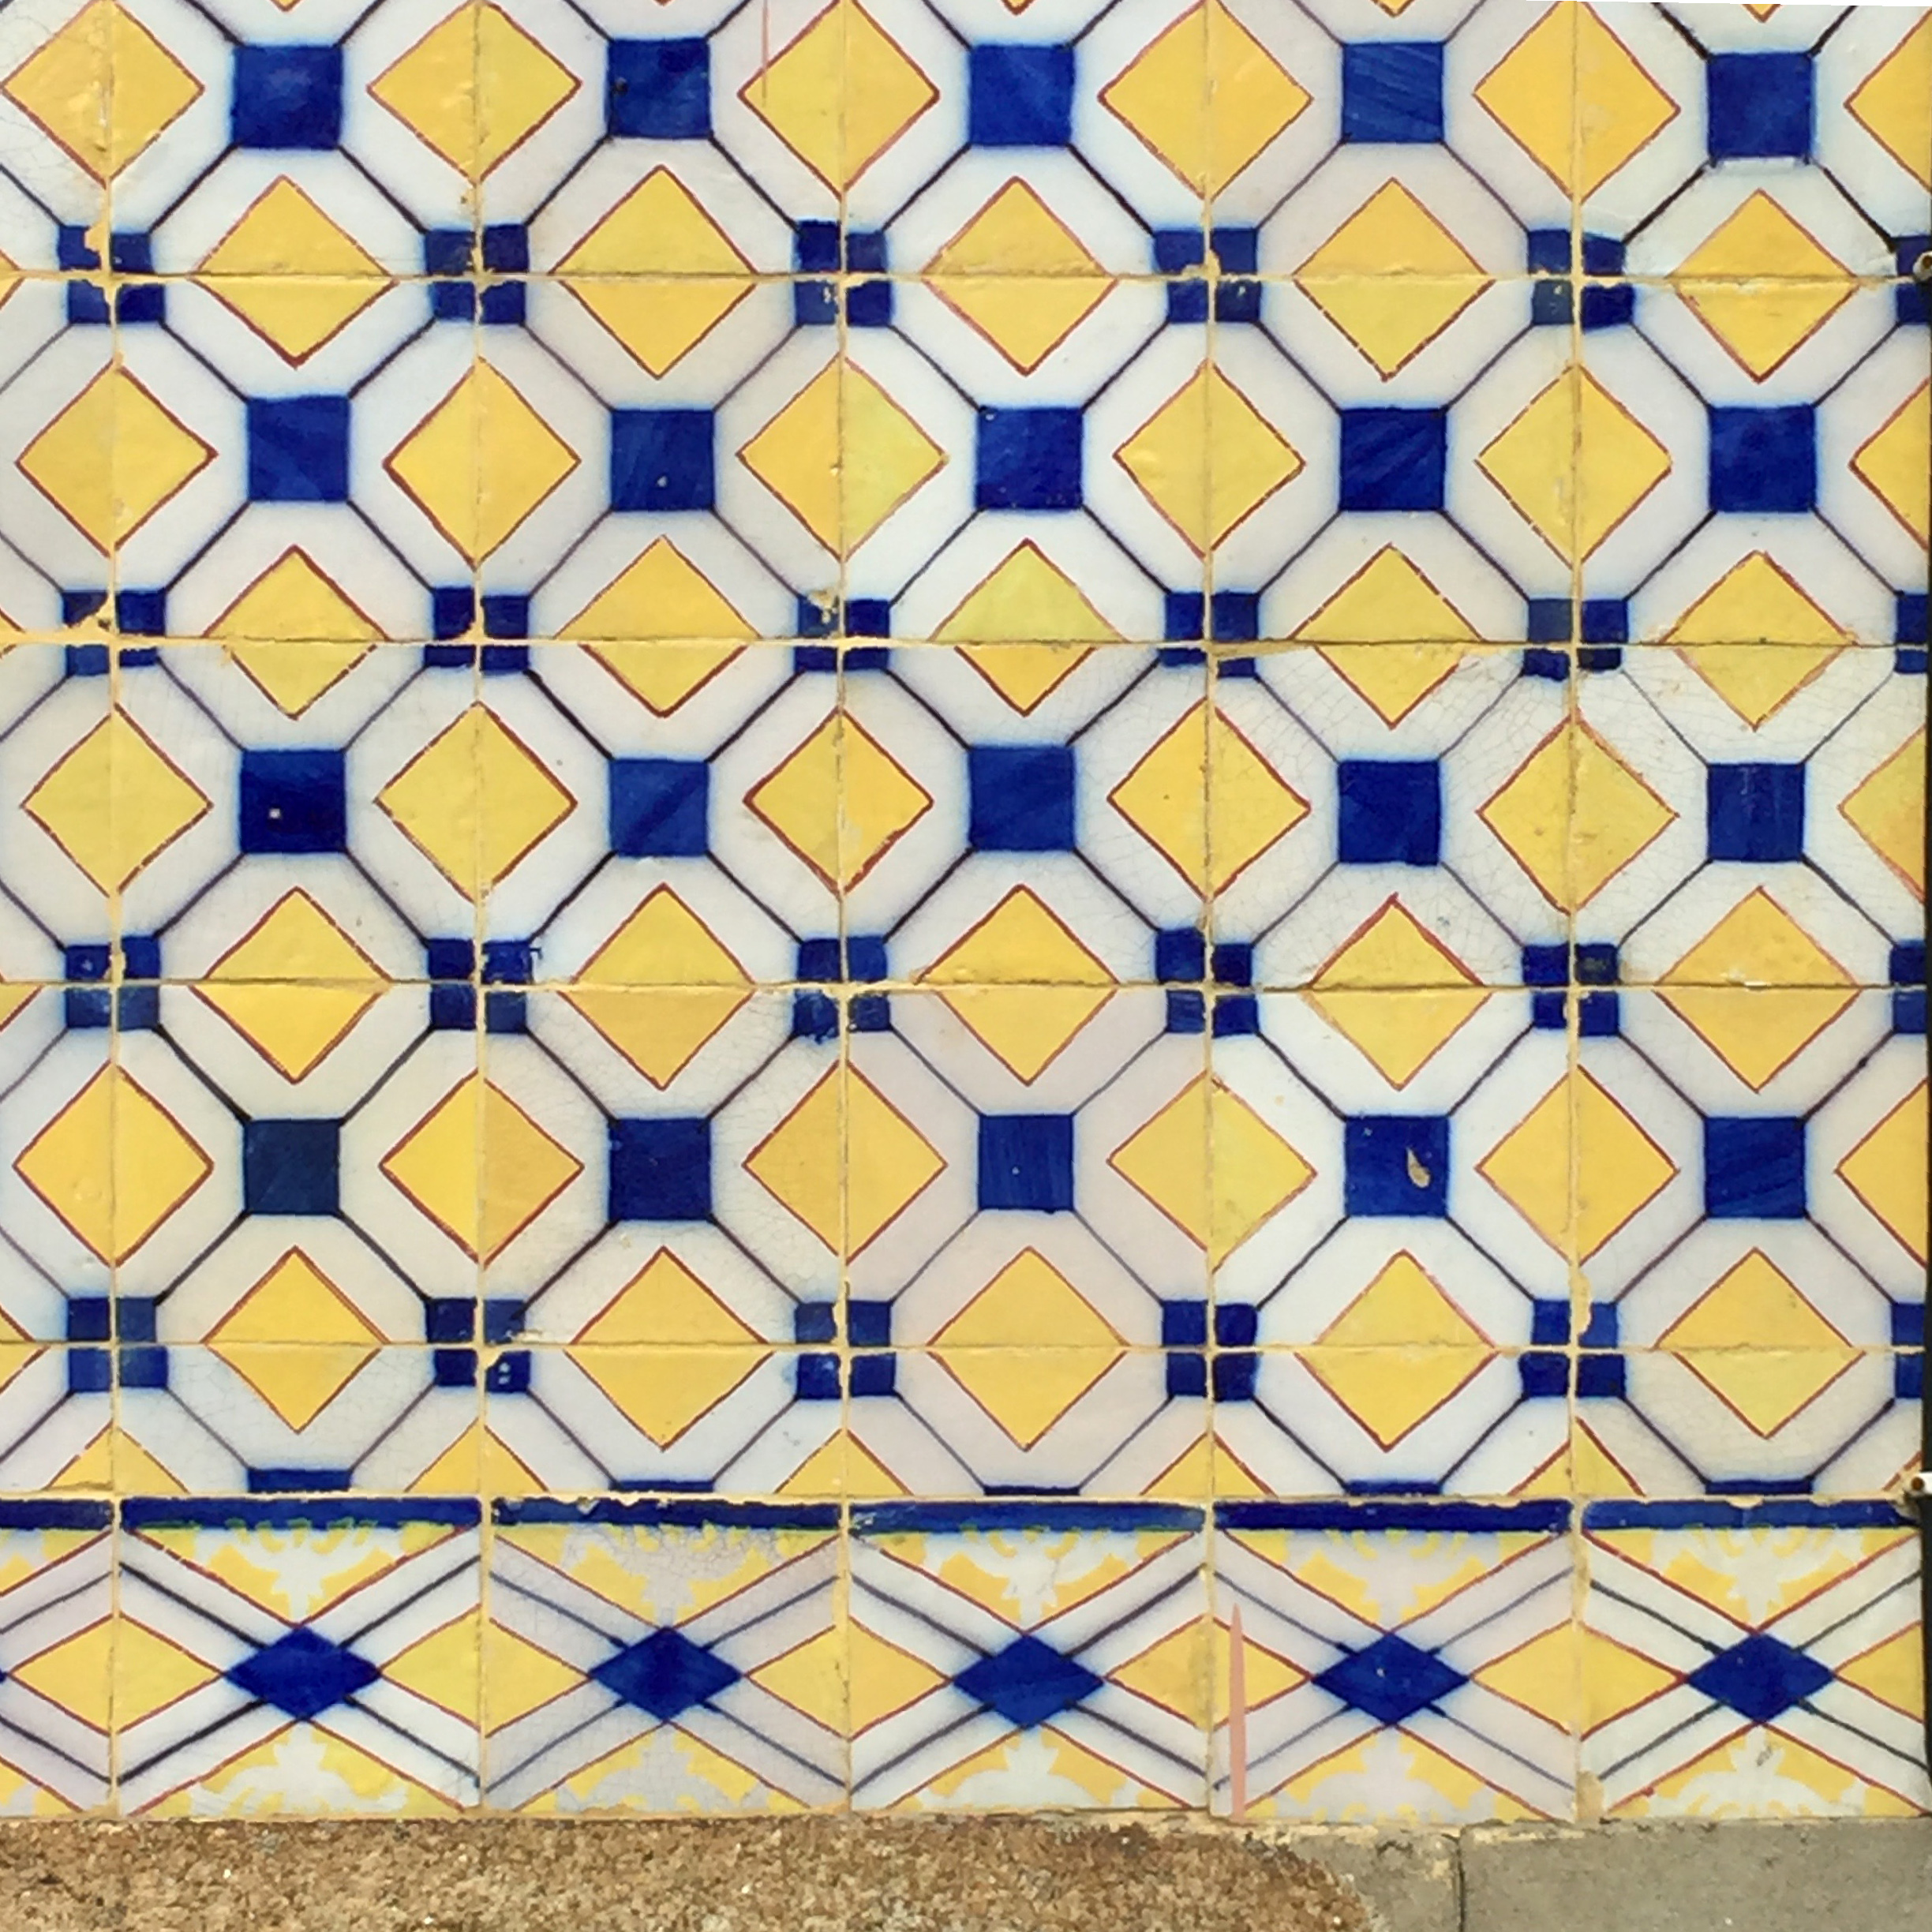 Blue Yellow Tiles.jpg